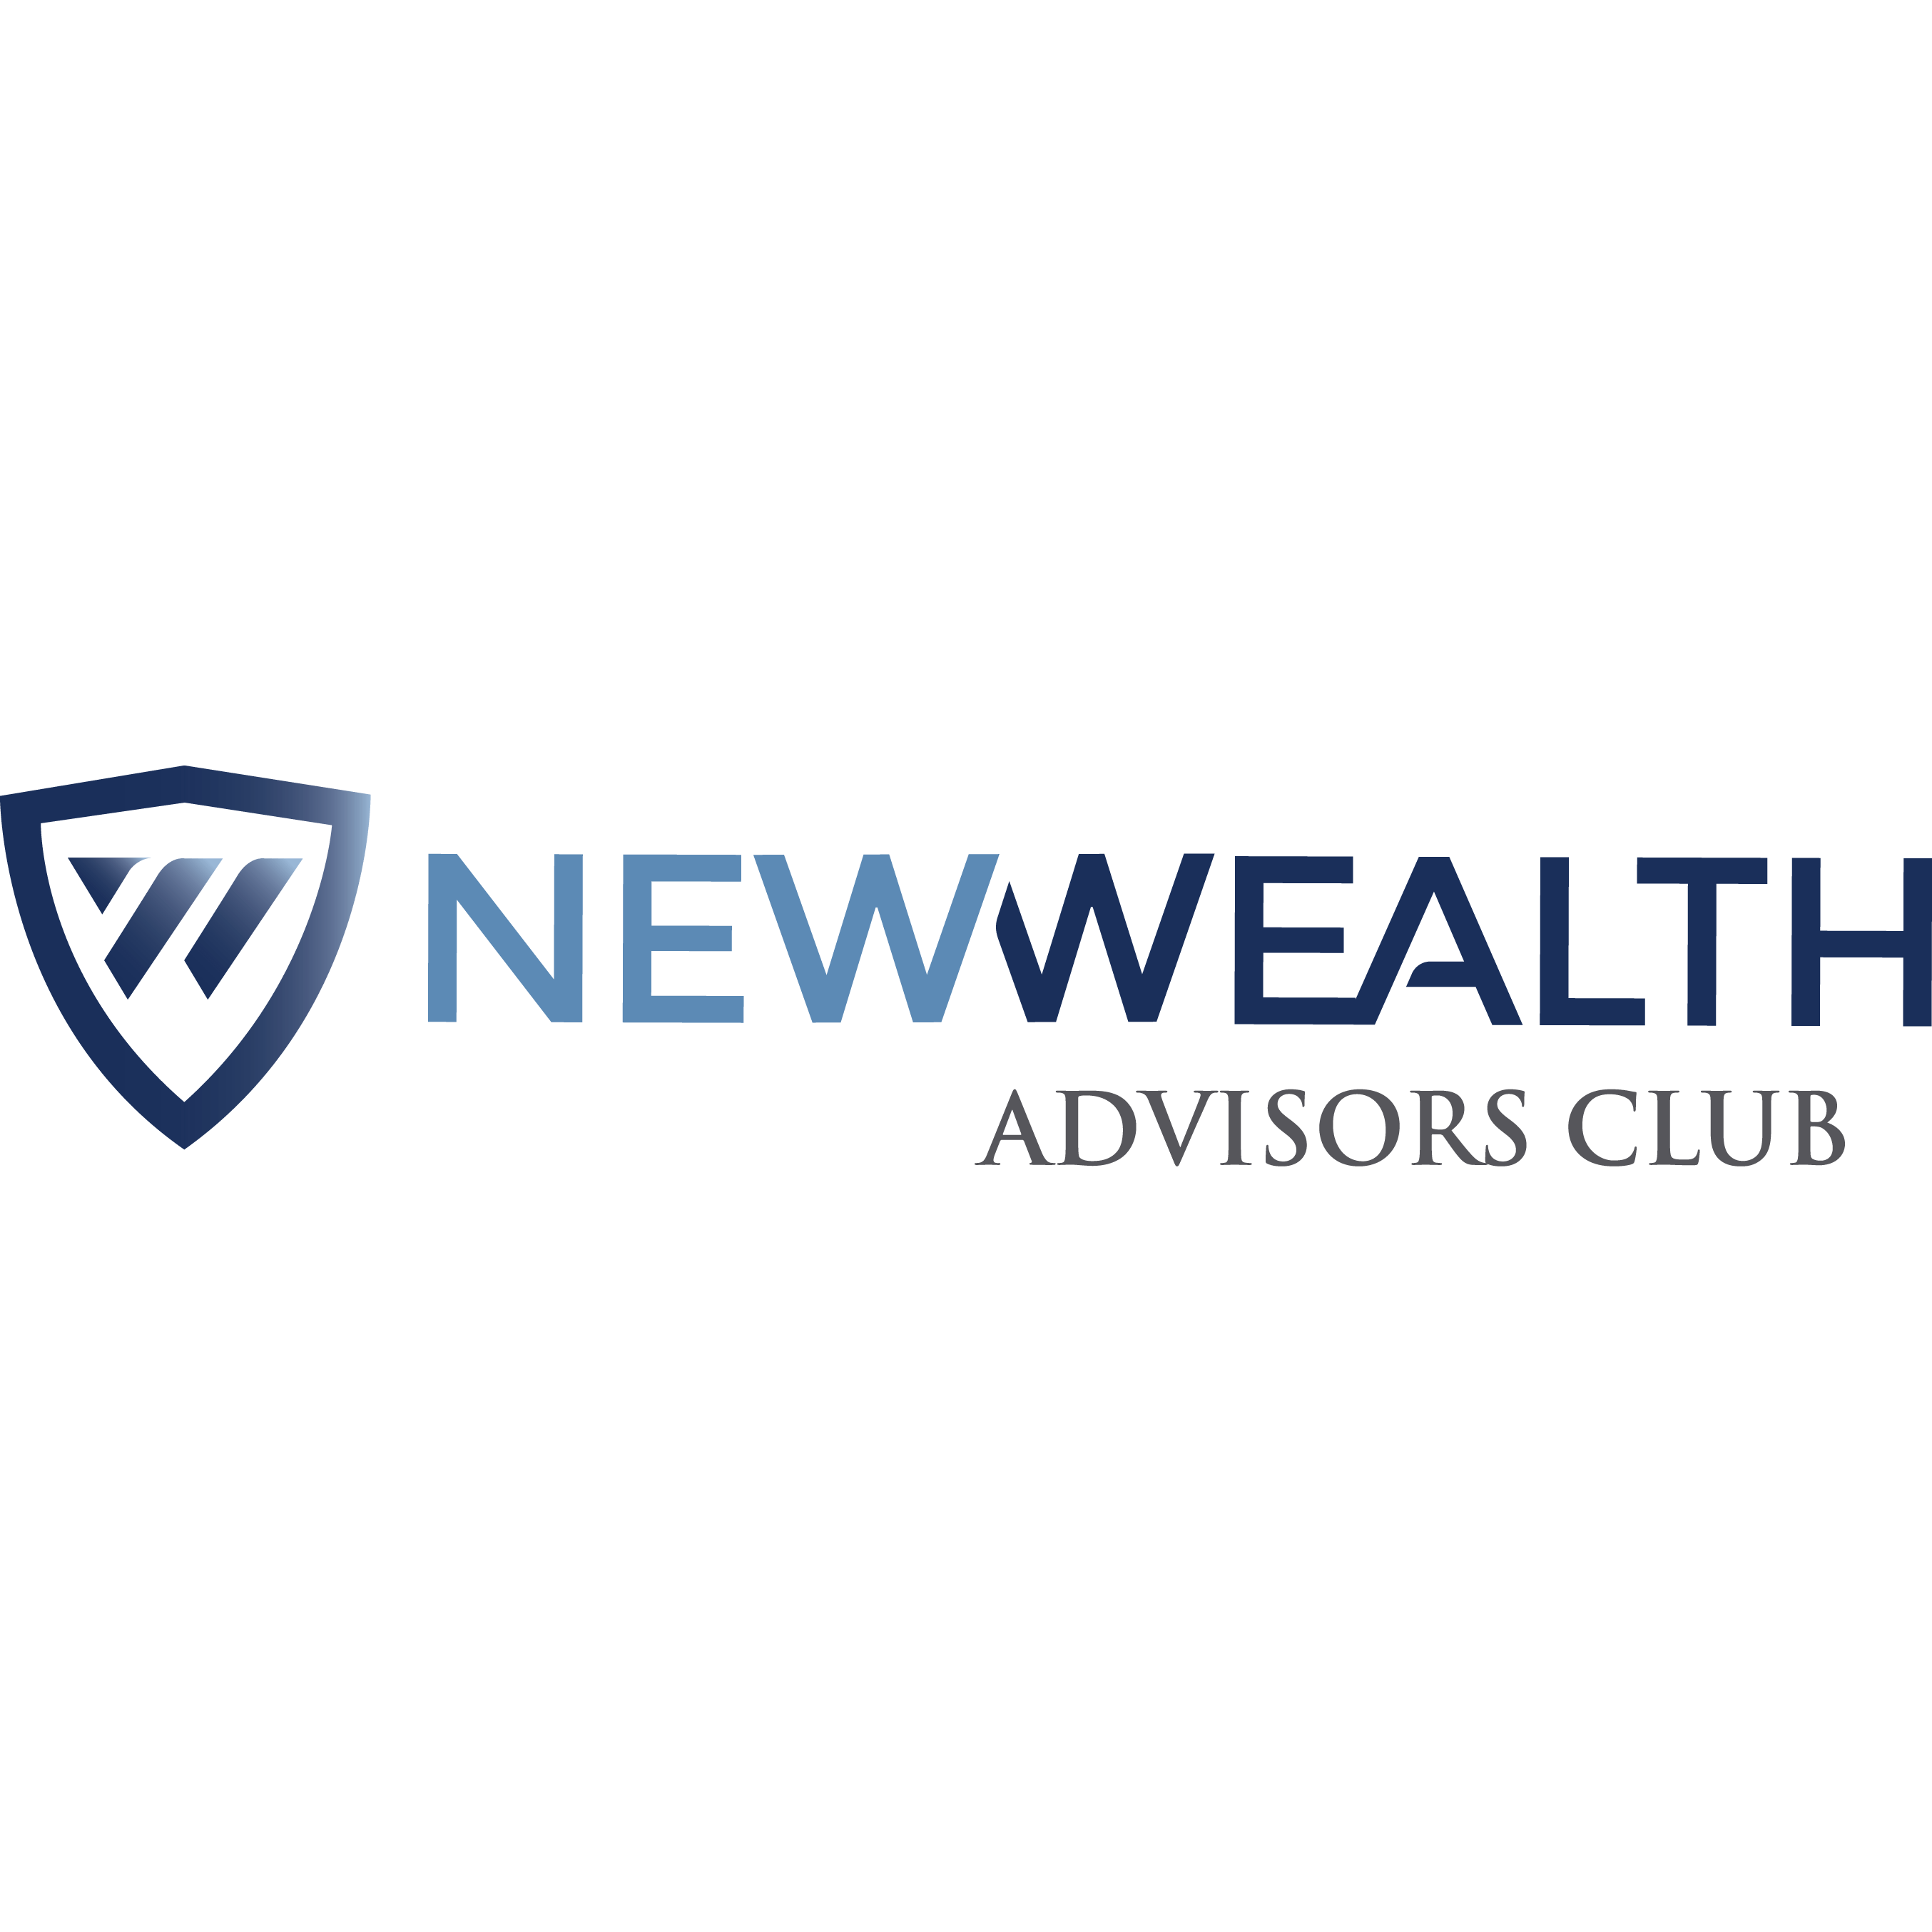 New Wealth Advisors Club